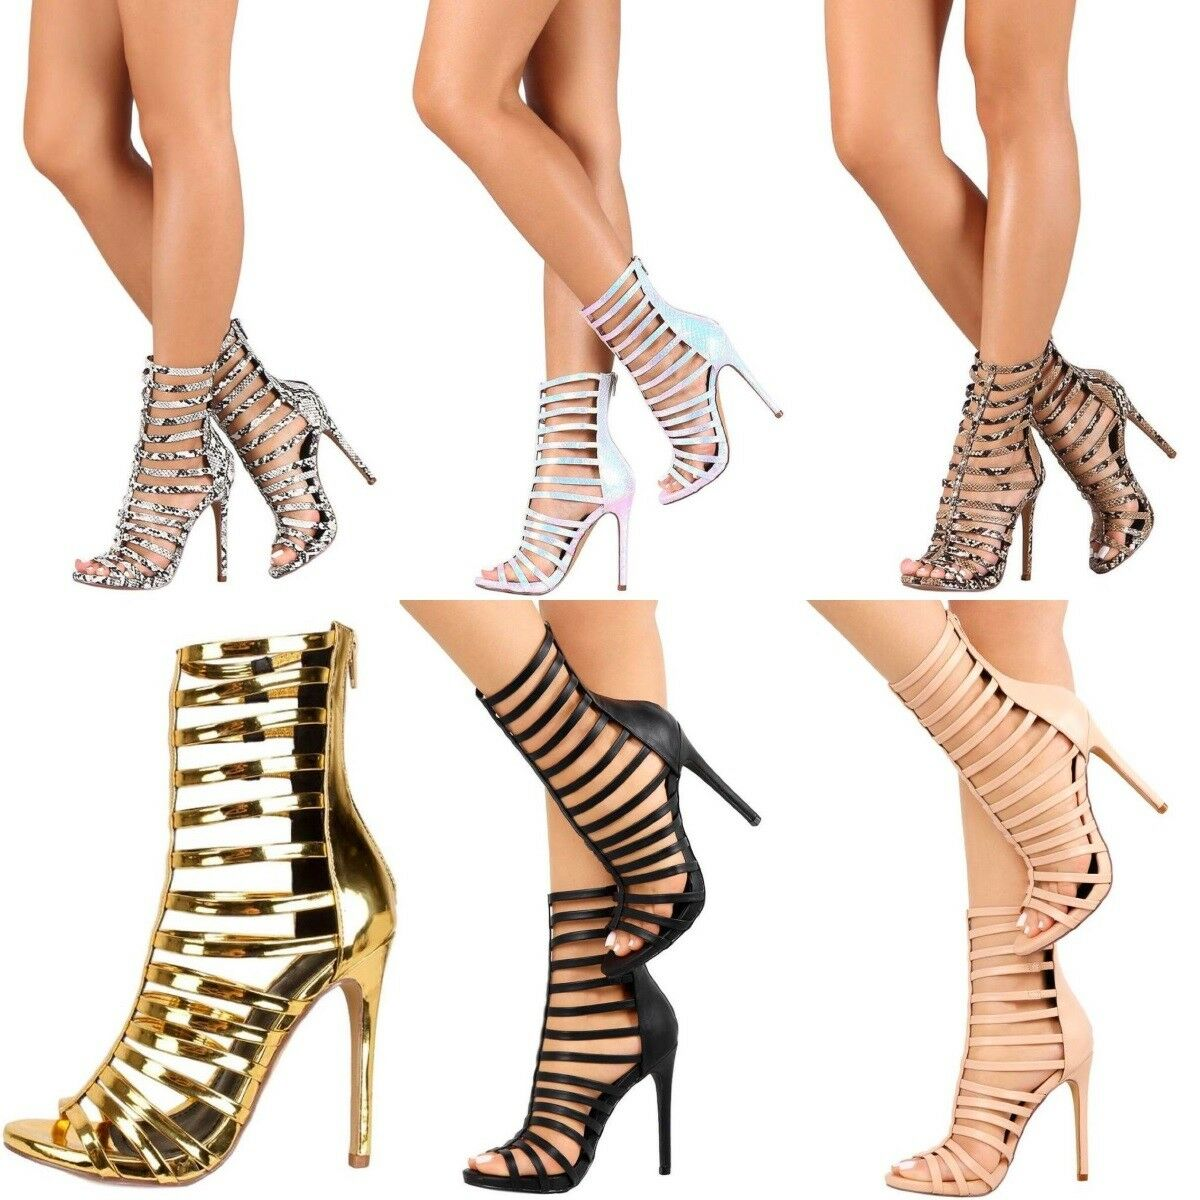 Caged Lace Up Strappy Stiletto High Exotic Heels Gladiator Sandals Booties H218